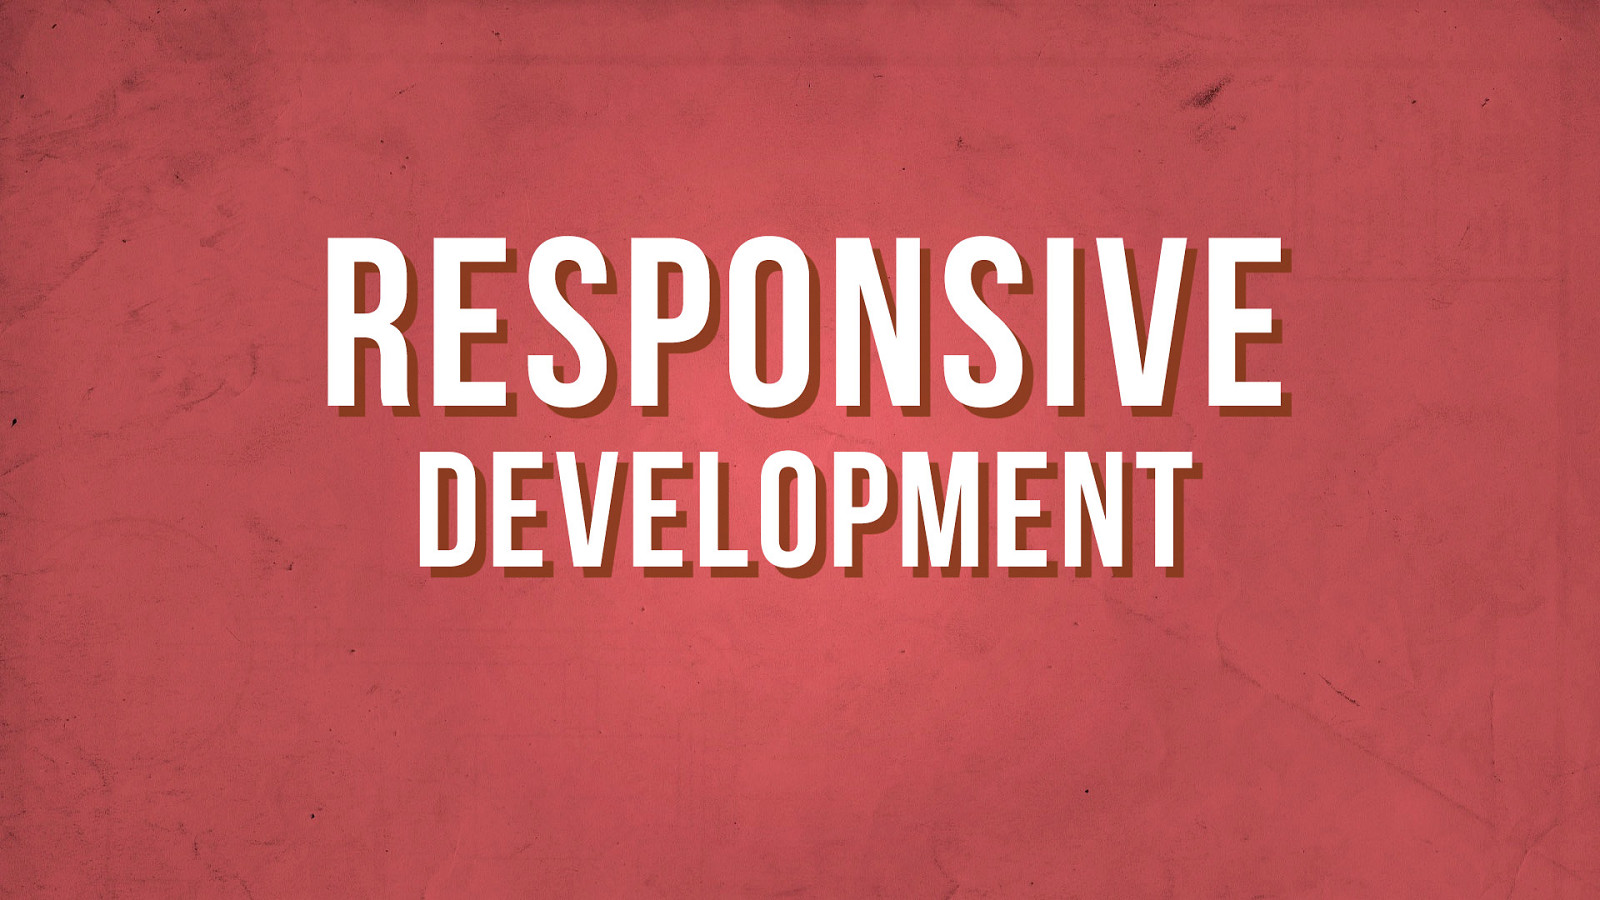 Responsive Development Best Practices